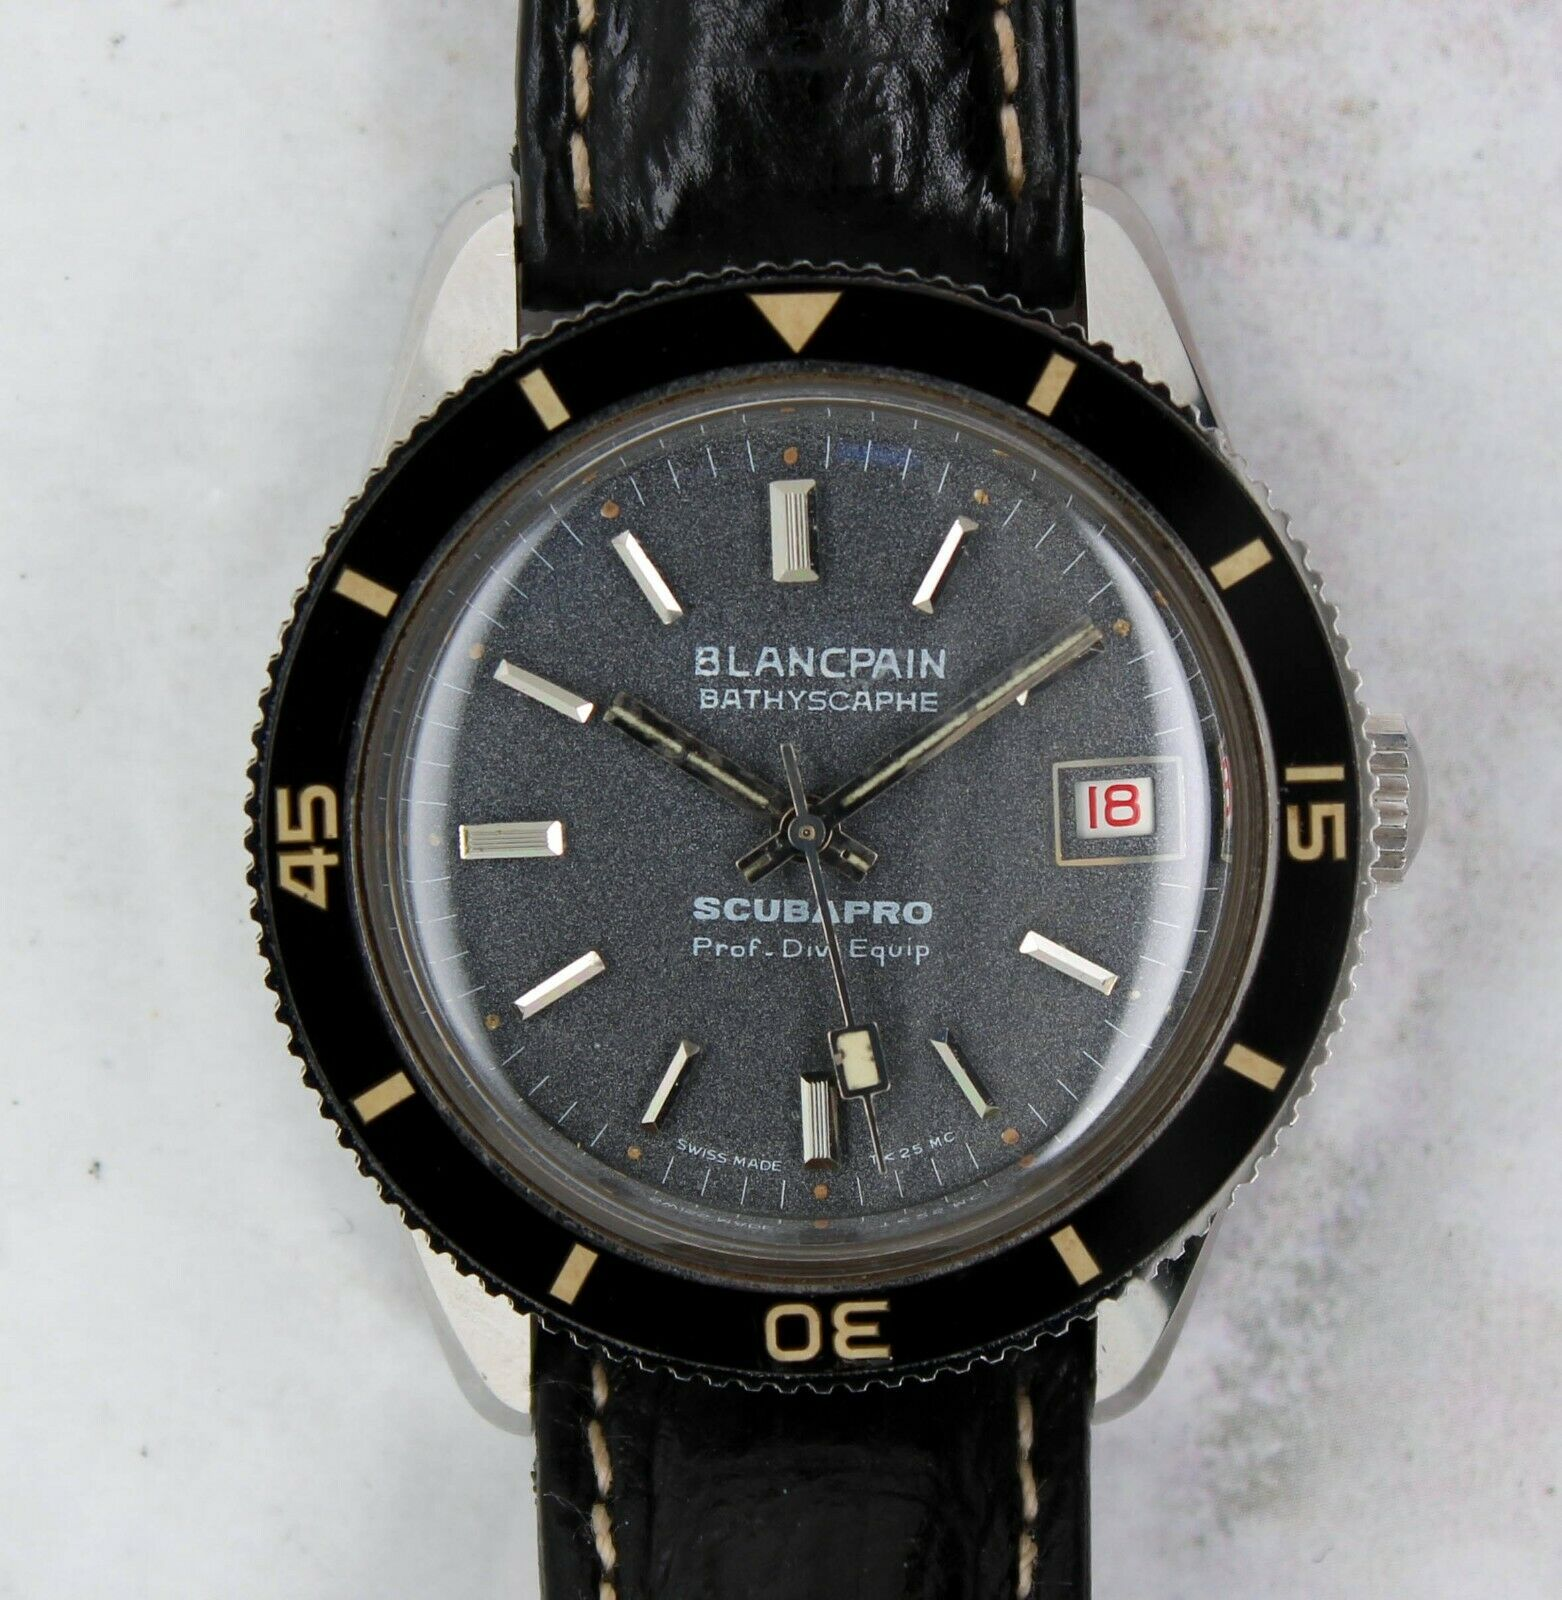 Vintage Blancpain Fifty Fathoms Bathyscaphe Scubapro Diver Wristwatch RARE NR - watch picture 1